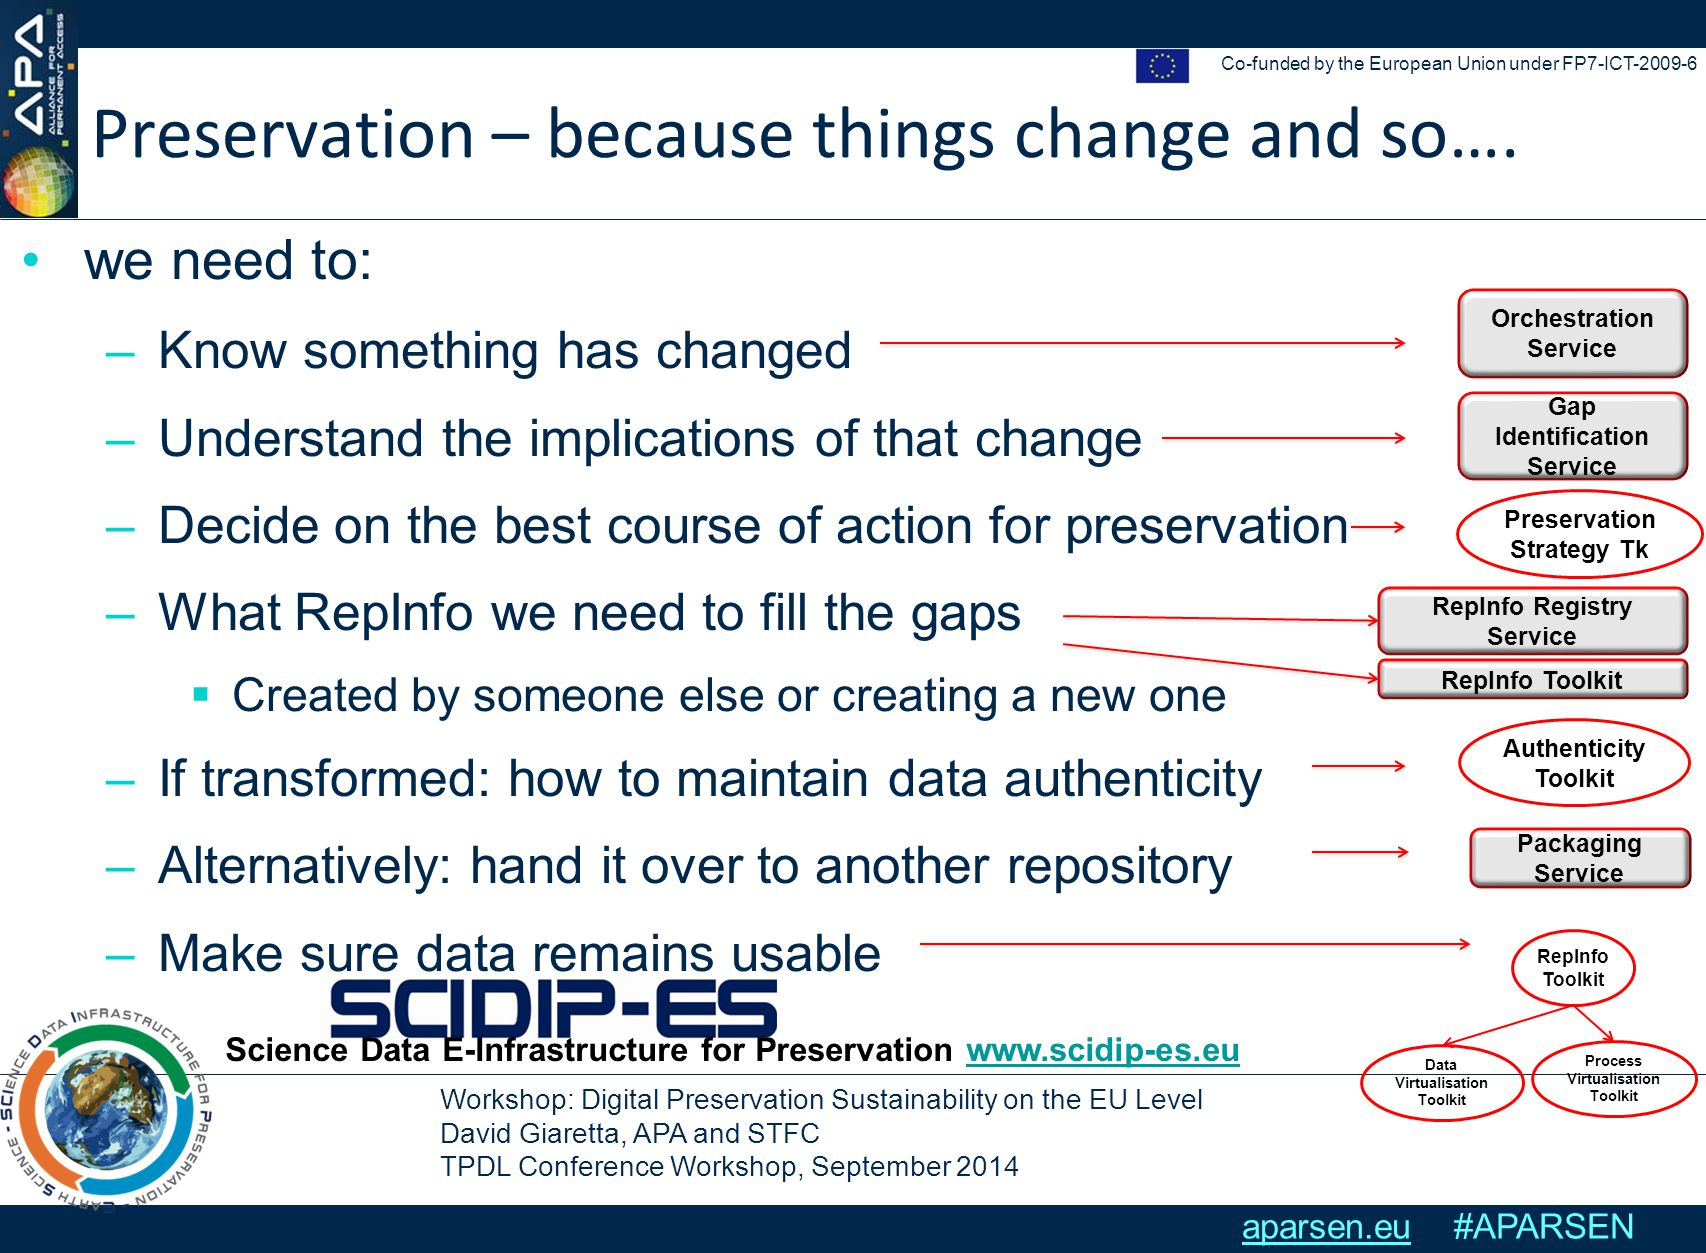 Workshop: Digital Preservation Sustainability on the EU Level David Giaretta, APA and STFC TPDL Conference Workshop, September 2014 Co-funded by the European Union under FP7-ICT-2009-6 aparsen.eu #APARSEN Preservation – because things change and so….